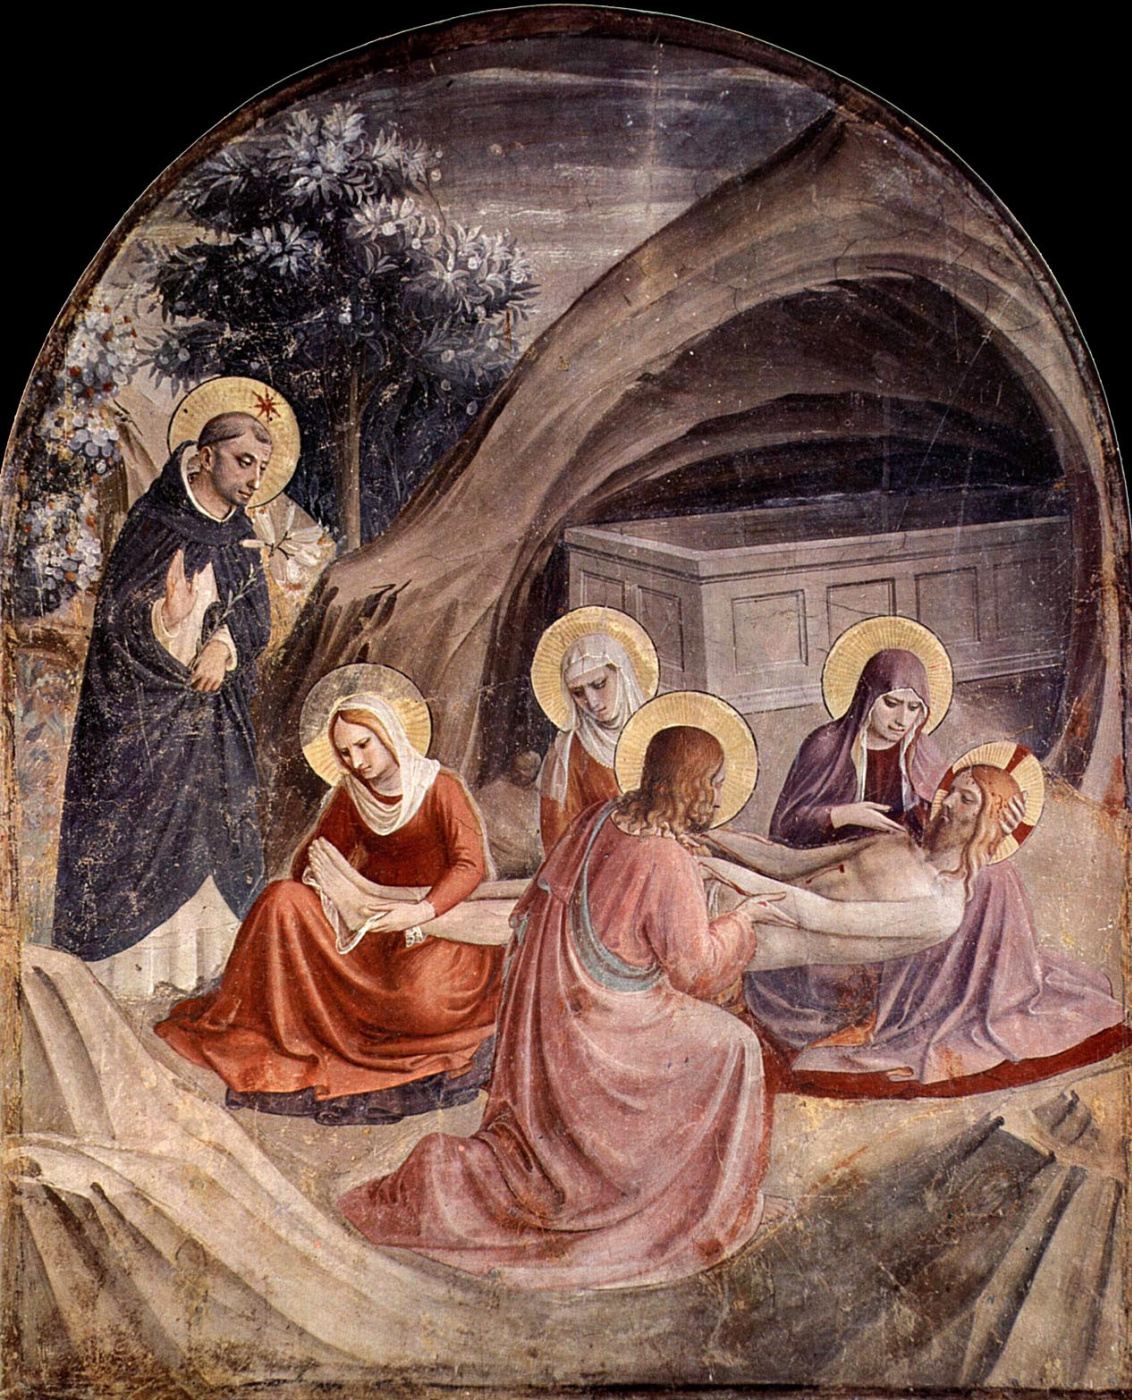 Fra Beato Angelico. Position in the coffin. Fresco of the Monastery of San Marco, Florence